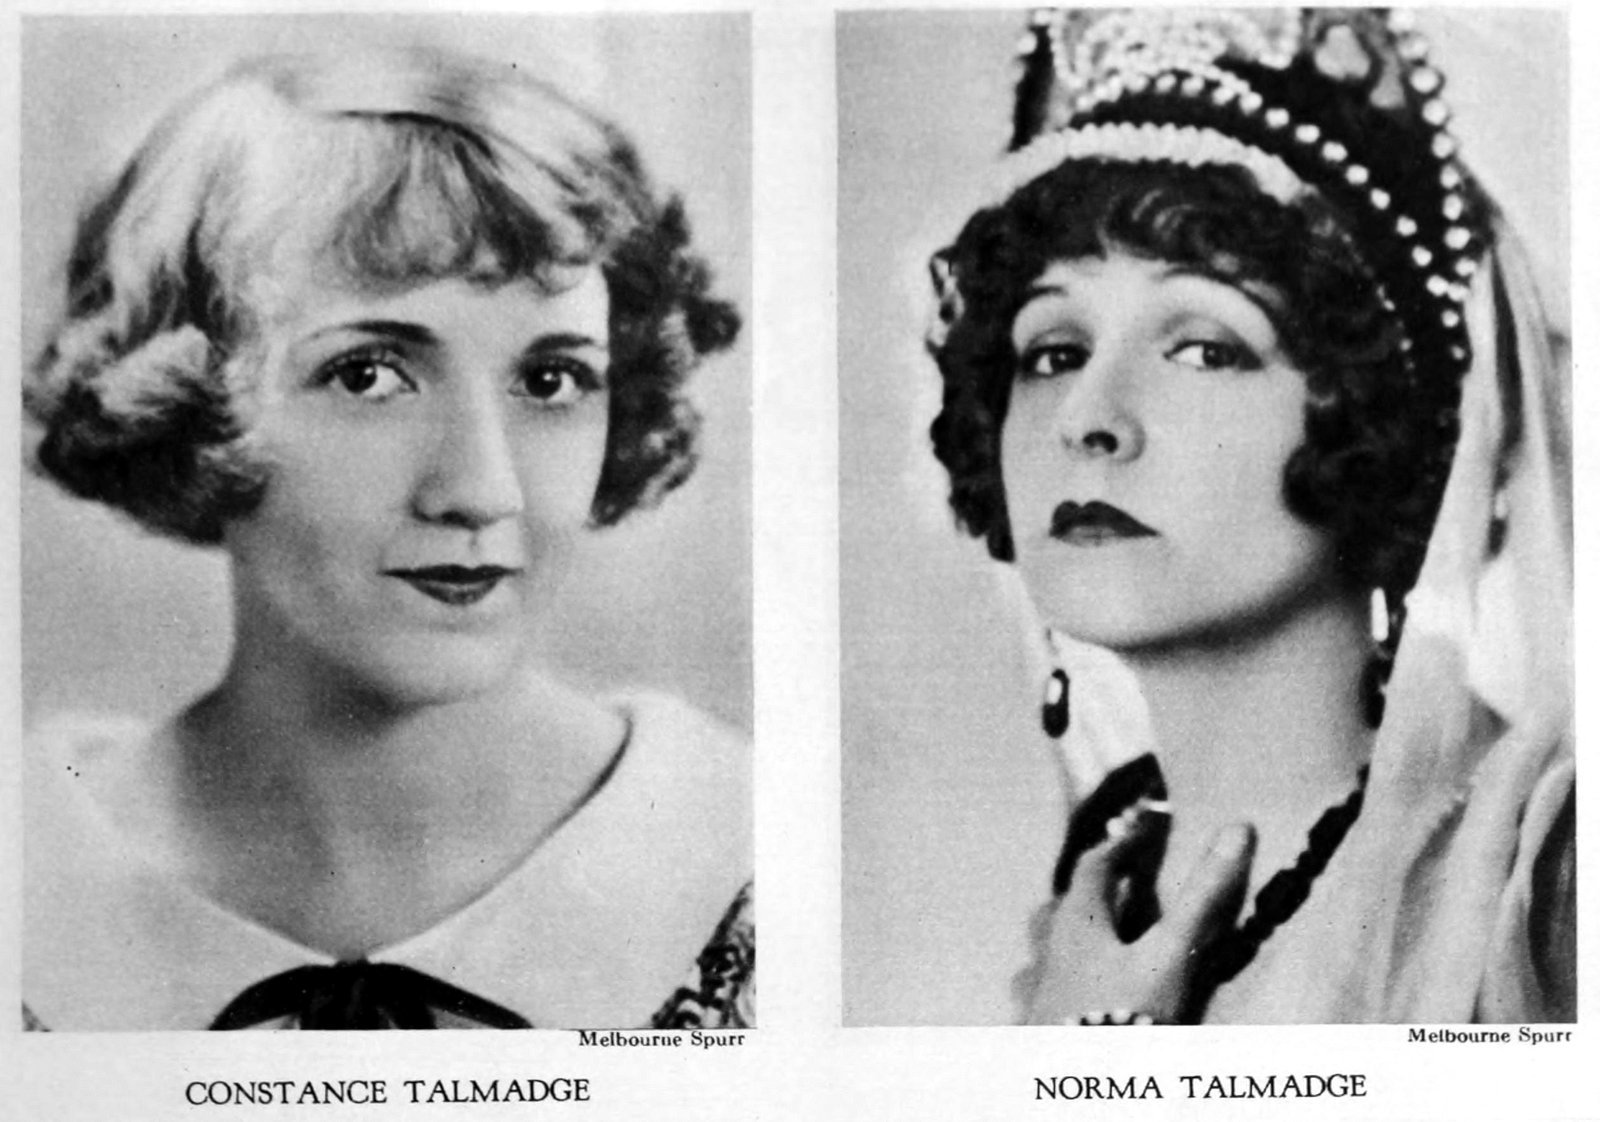 Vintage 1920s hairstyles - Constance Talmadge and Normal Talmadge